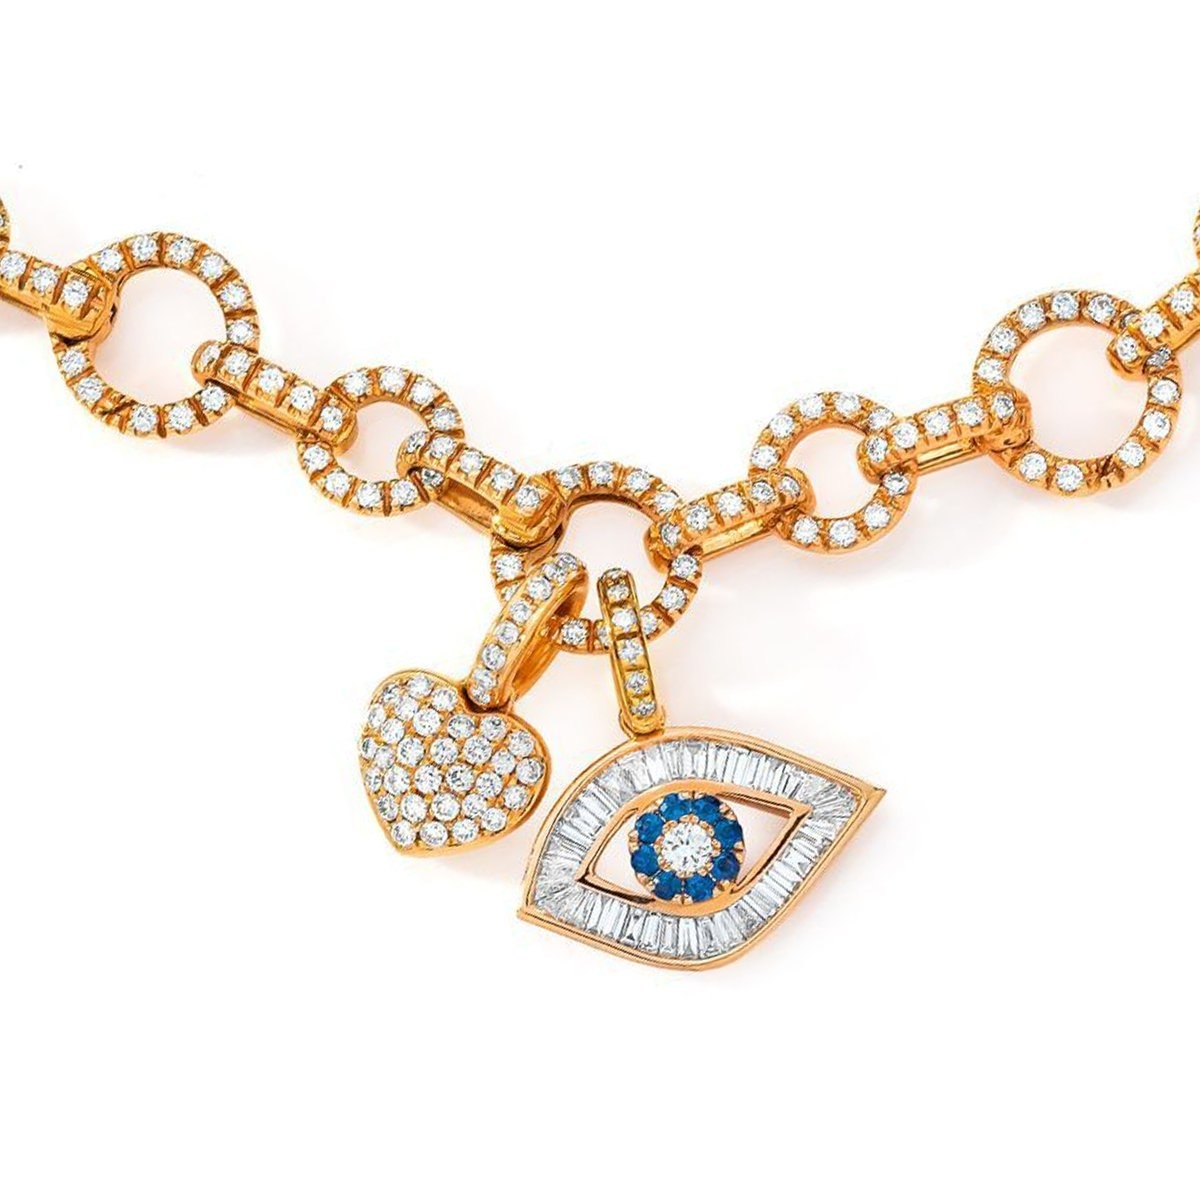 the gold bracelet with an evil eye charm